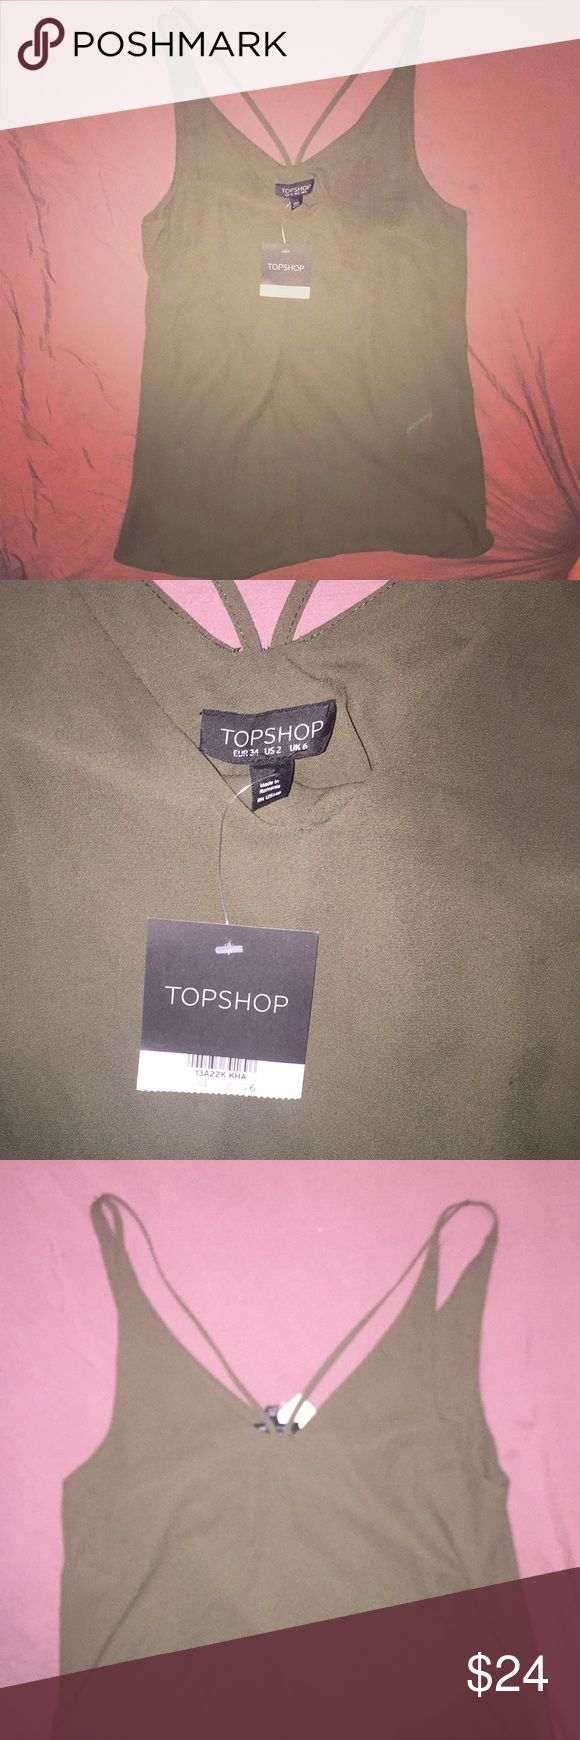 Topshop olive green strappy v-neck tank top 2 6 34 Brand new with tags. US 2. UK 6. EUR 34. Topshop Tops Tank Tops